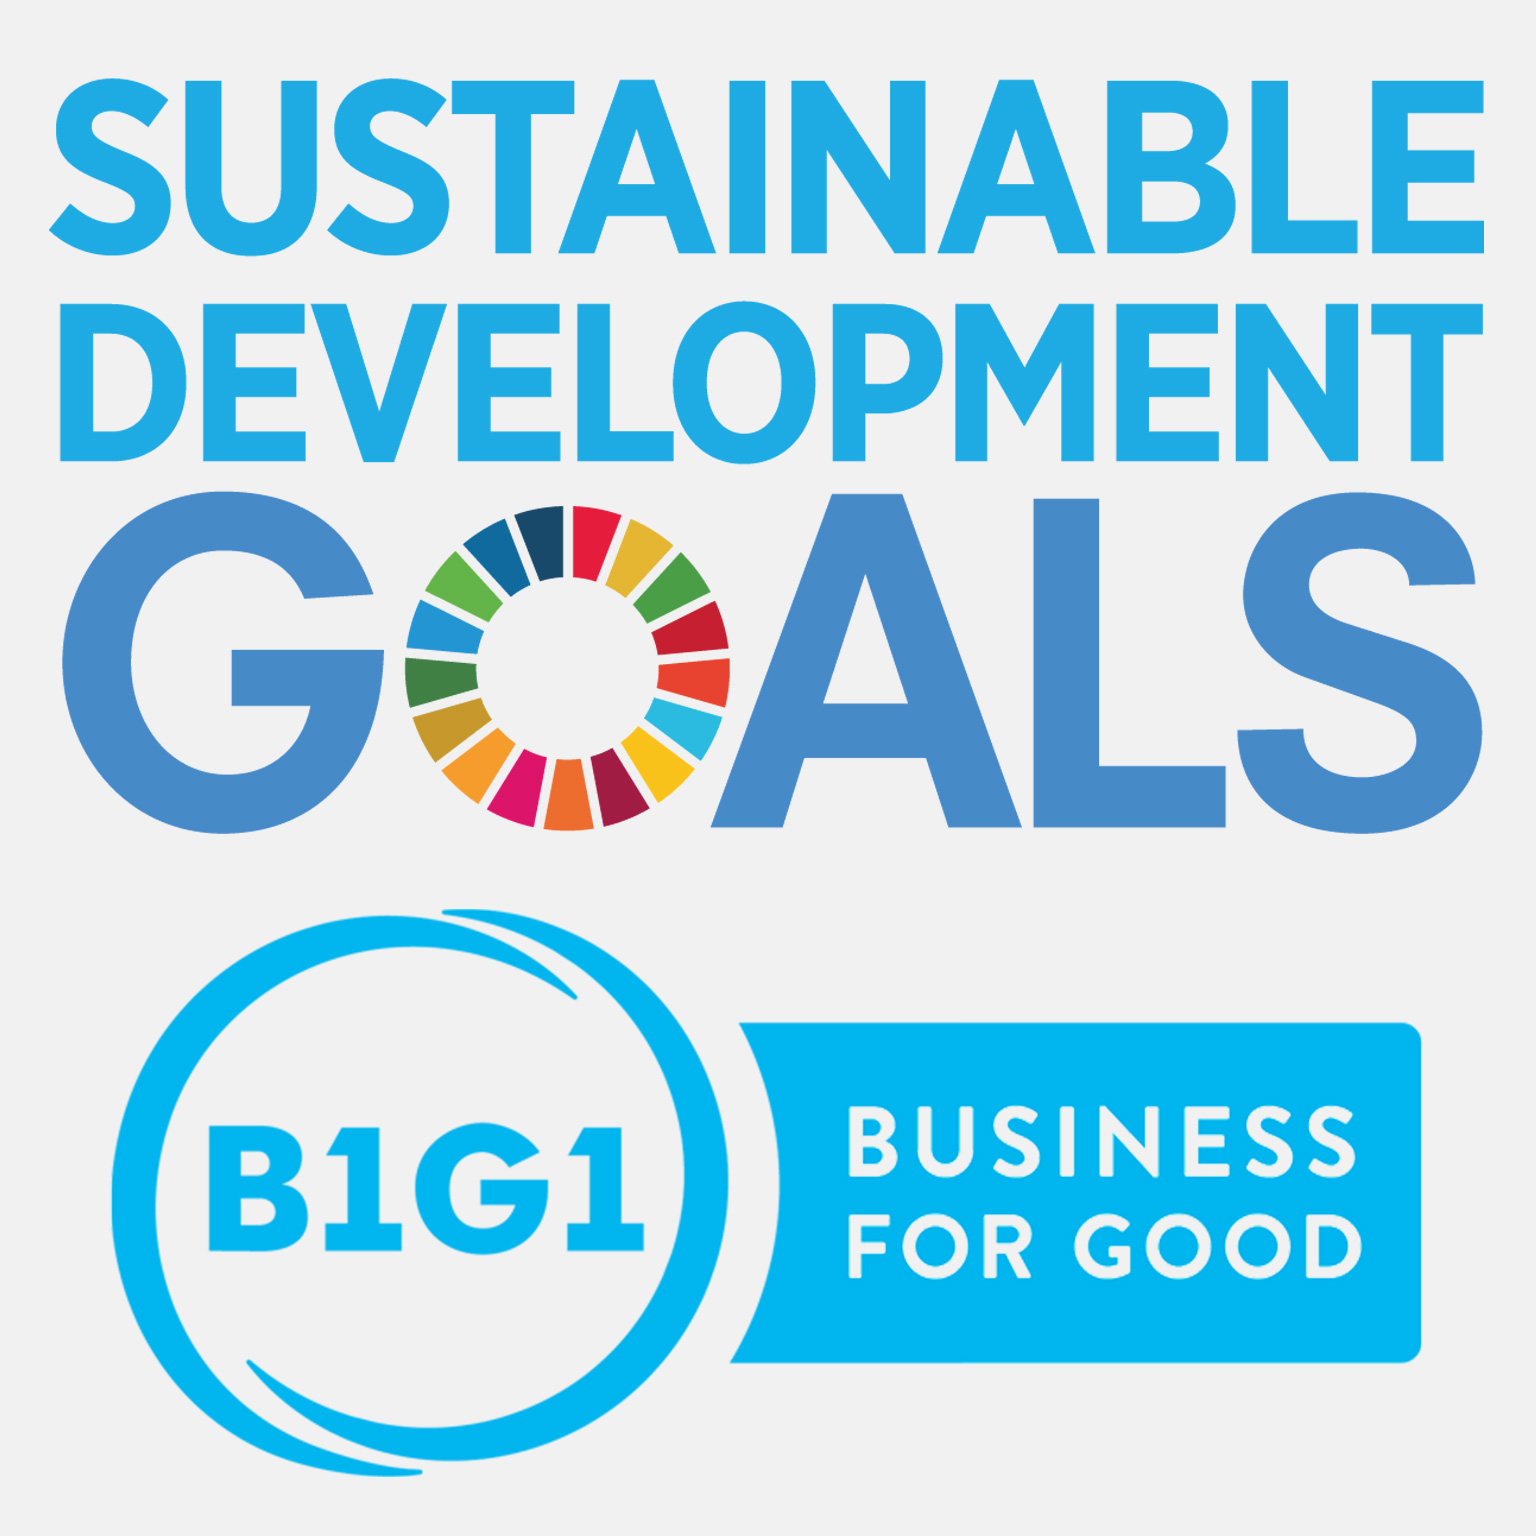 B1G1 SDG Sustainable